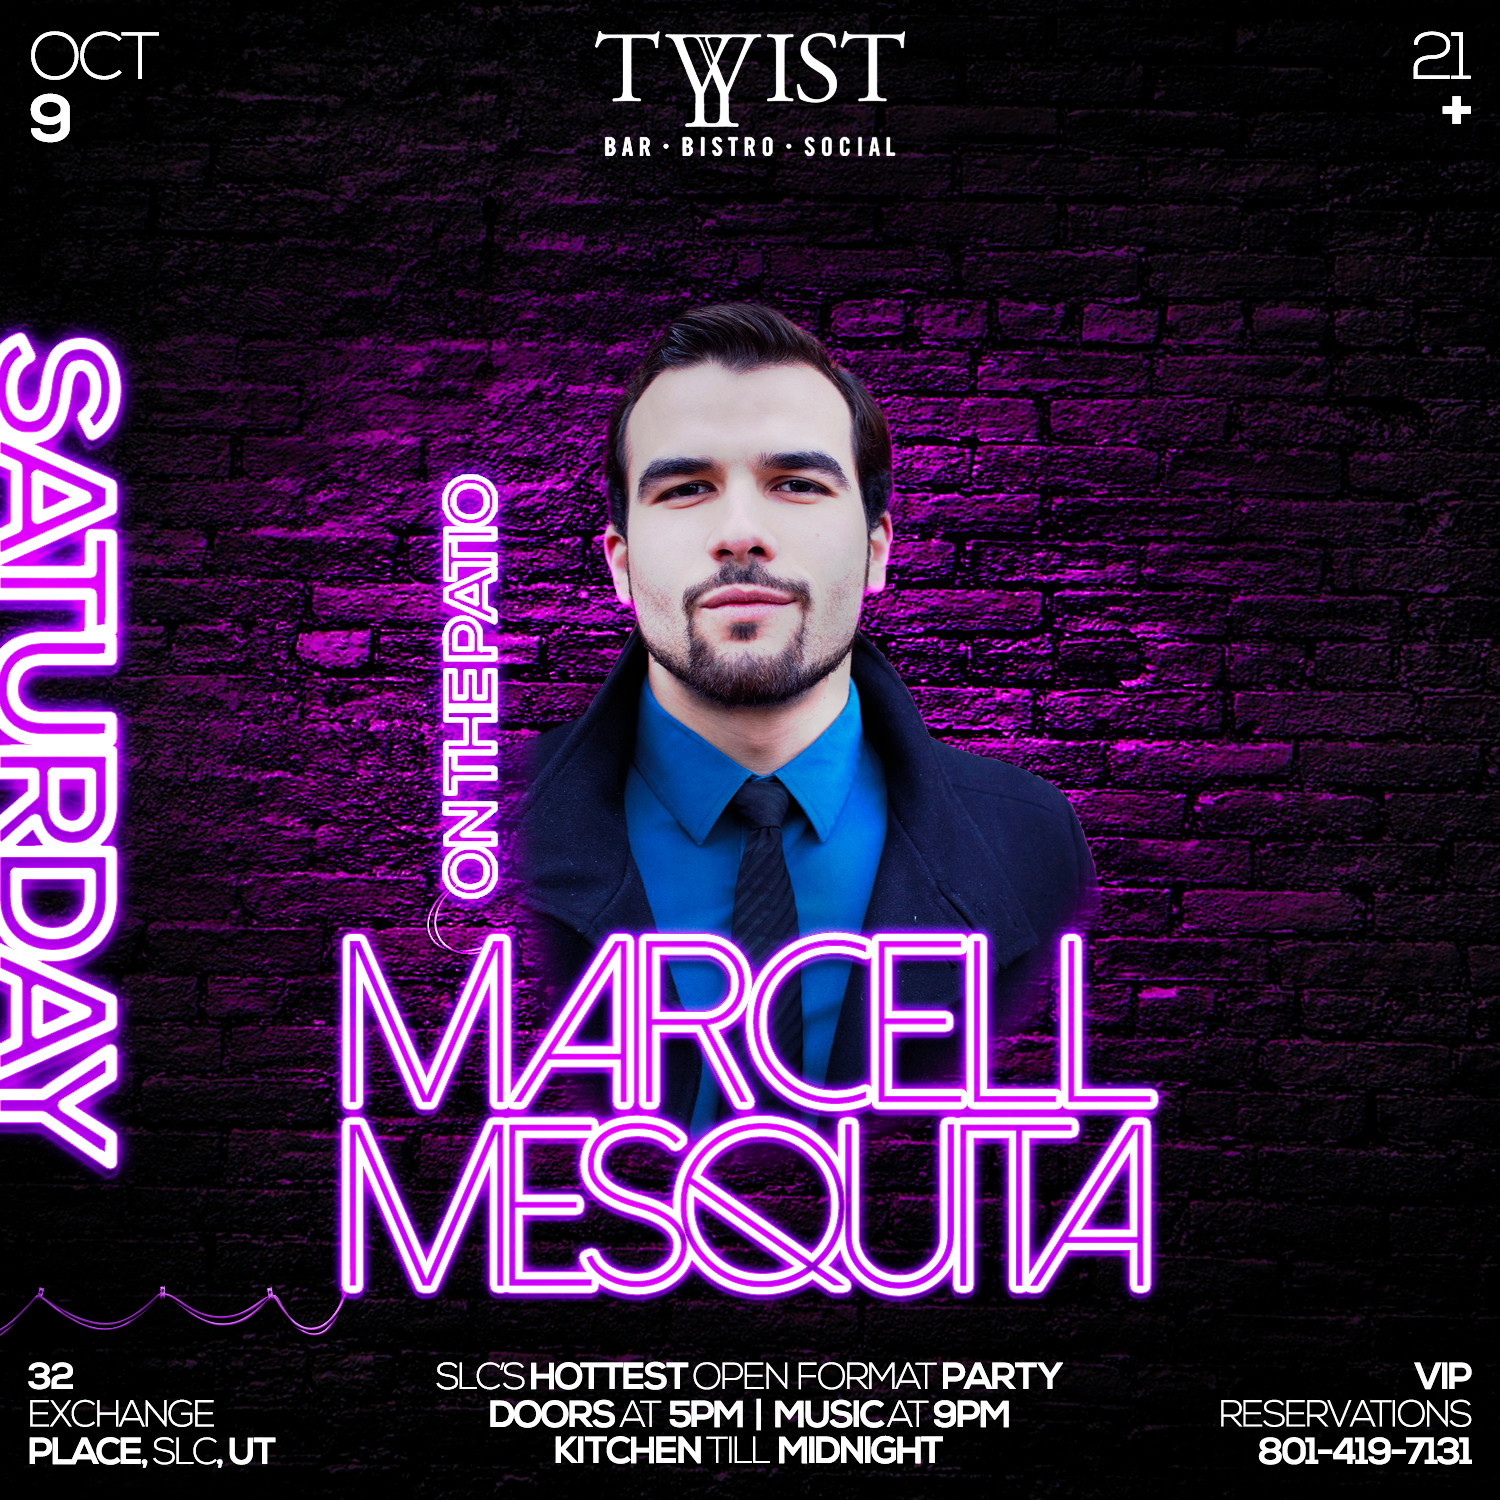 Event flyer for weekly Friday night held at Twist Bar & Bistro every Friday on 32 Exchance Place in Downtown Salt Lake City featuring live DJs, sports, and drink and food specials. Featuring DJ Marcell Mesquita